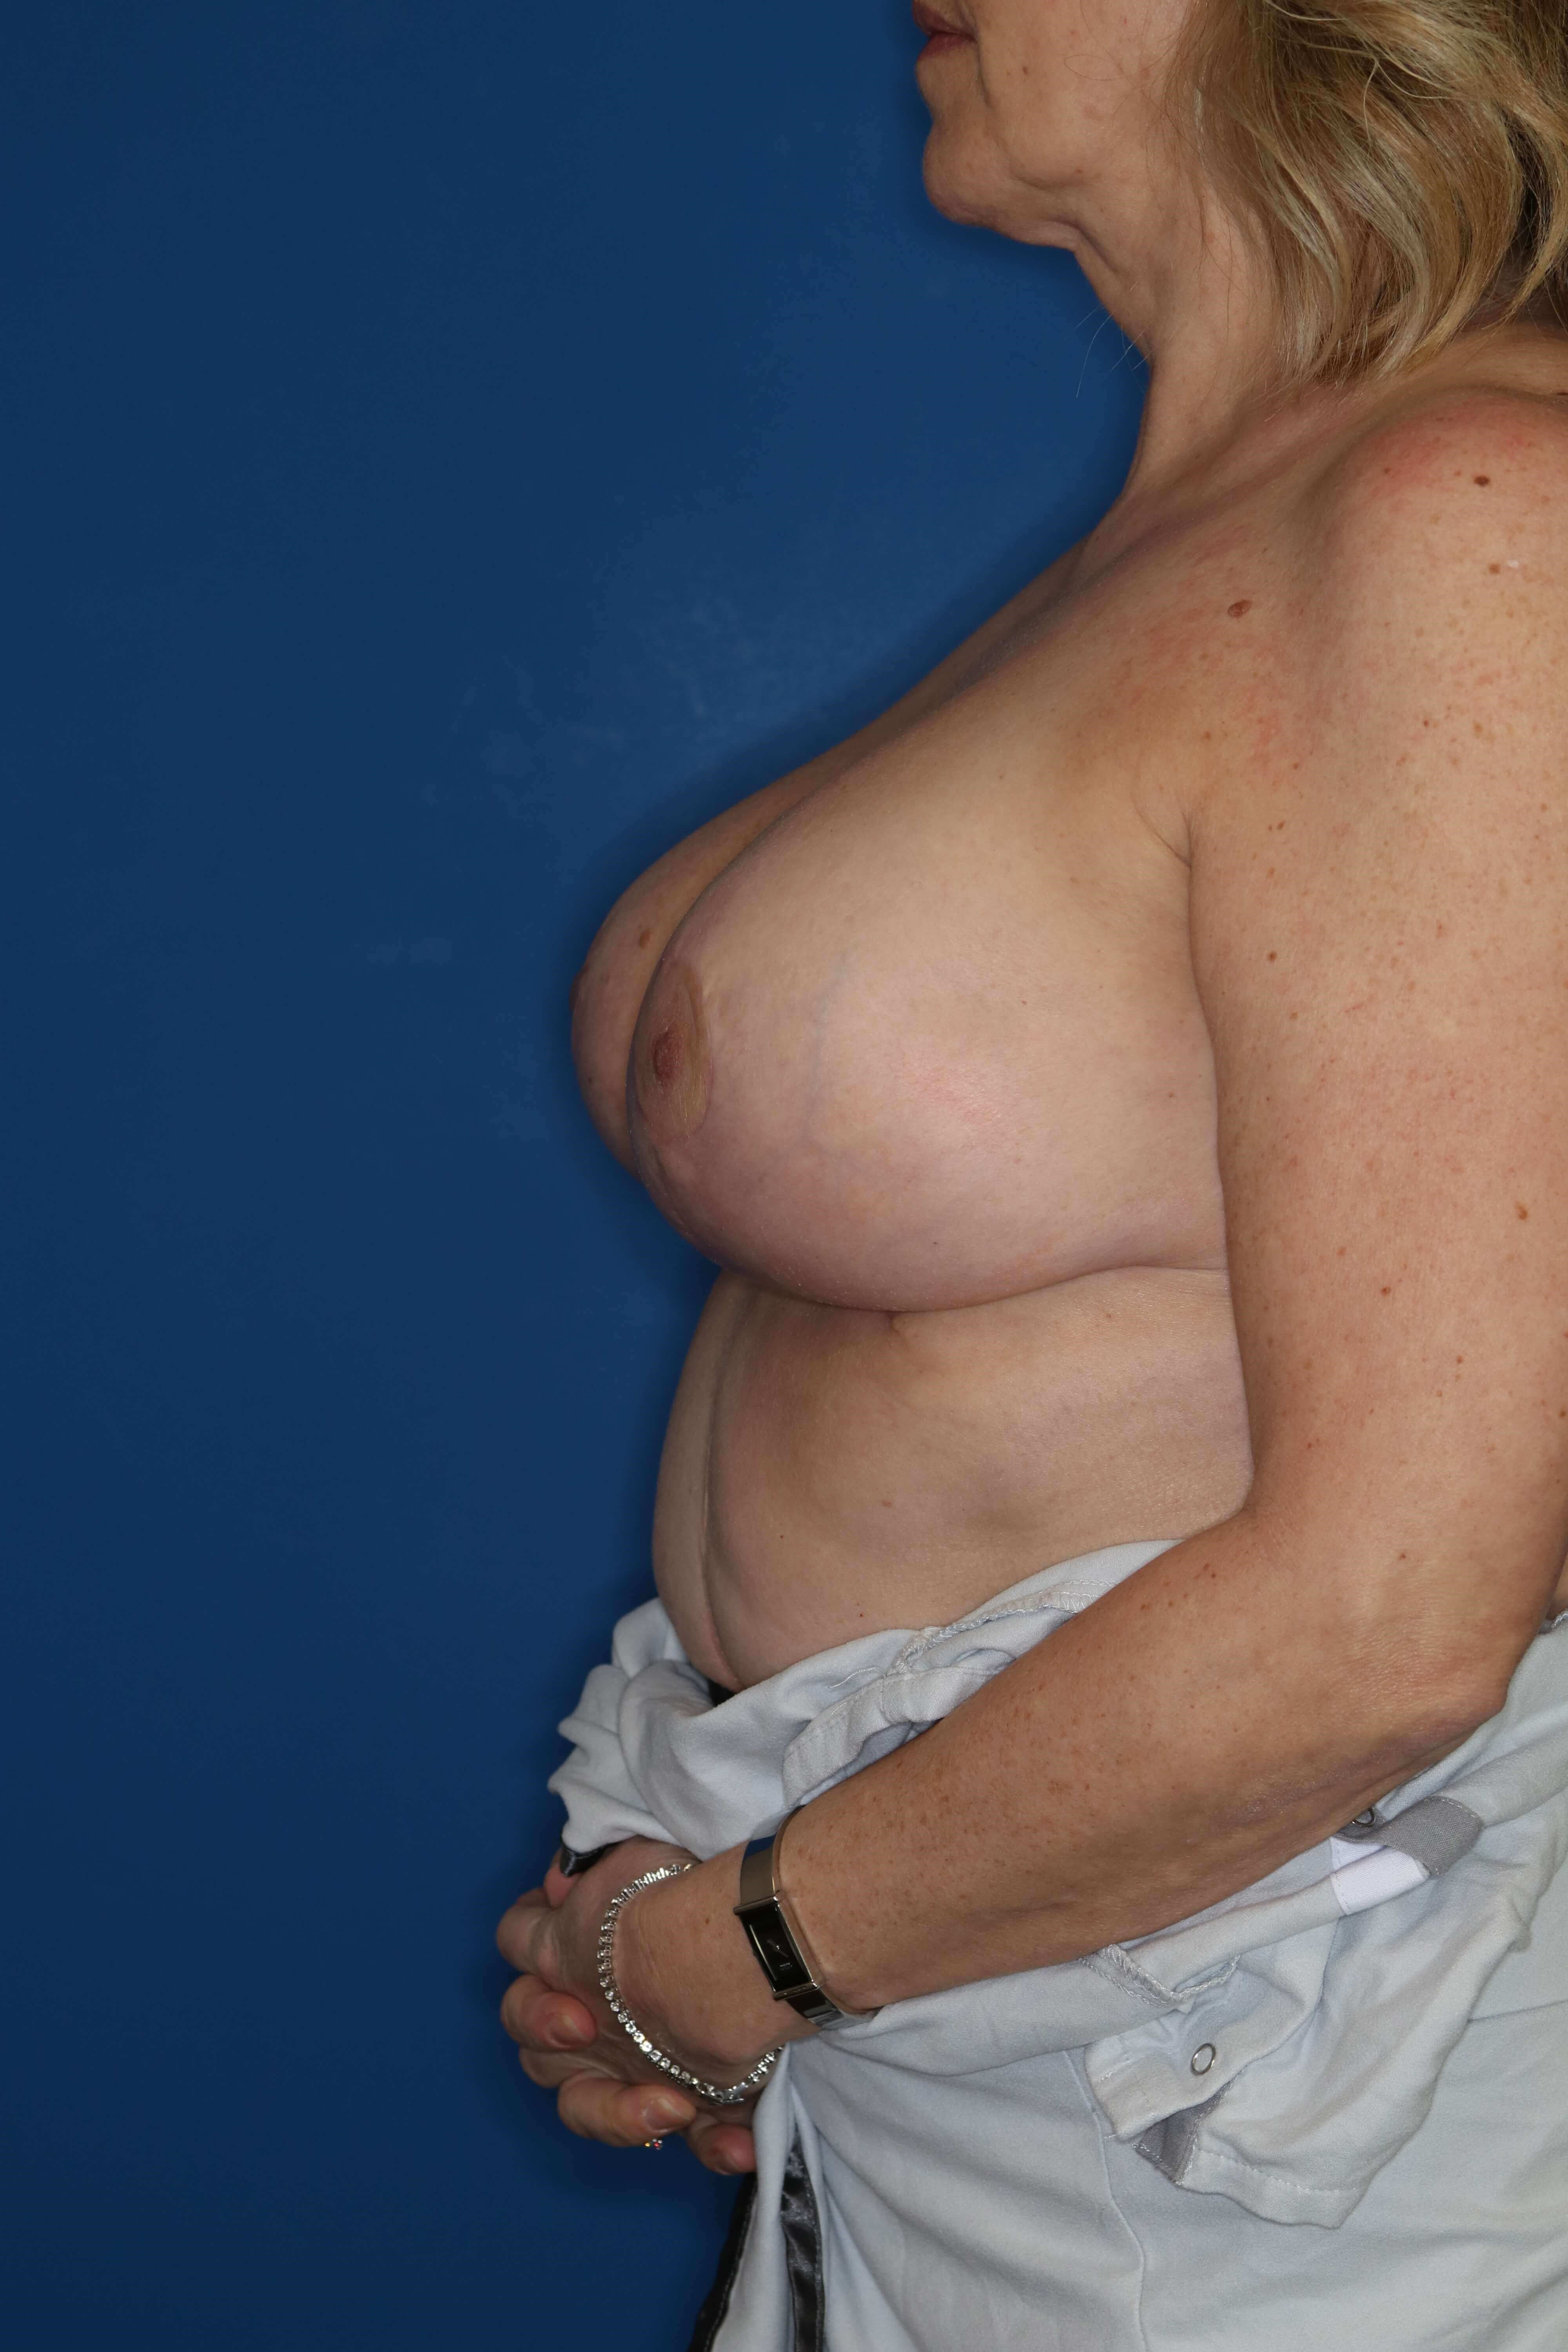 Short Scar Breast Reduction 3 months post op